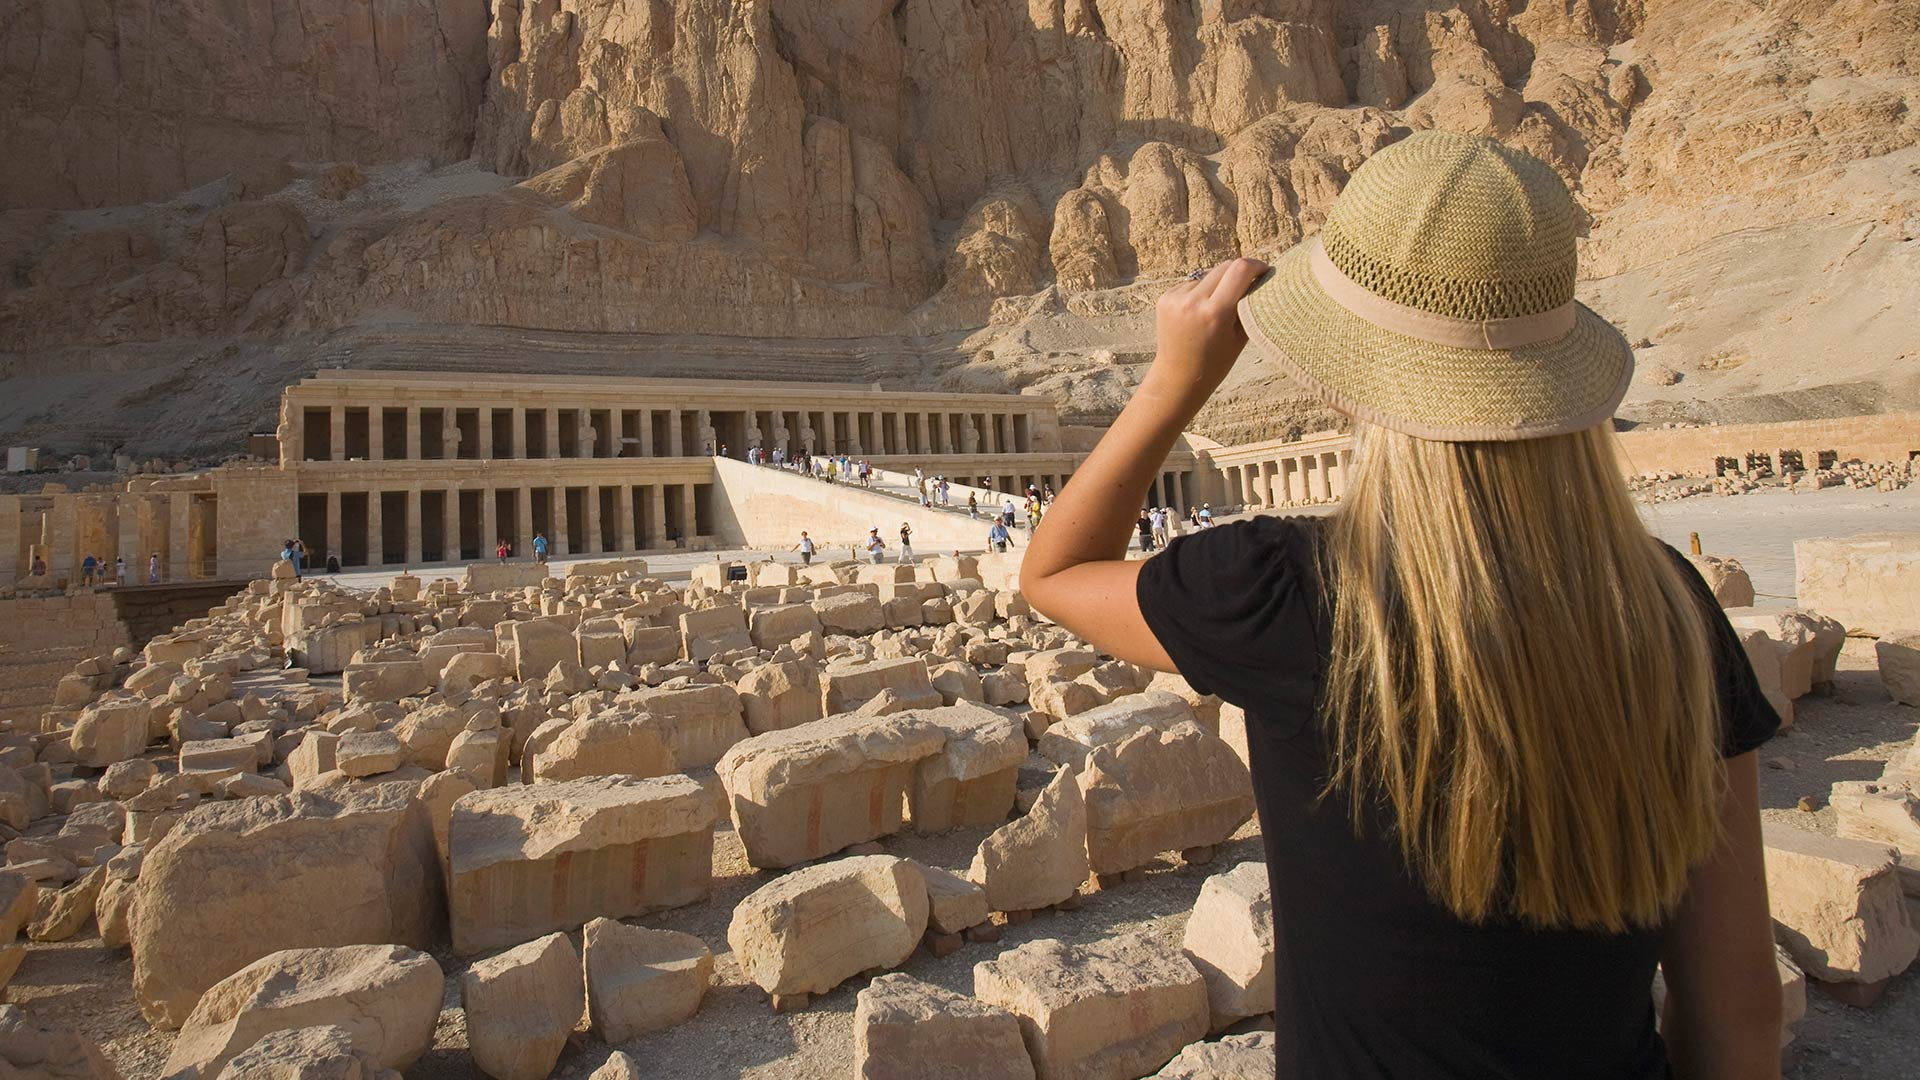 Woman gazes at the Temple of Hatshepsut in the Valley of the Kings and Queens, Egypt